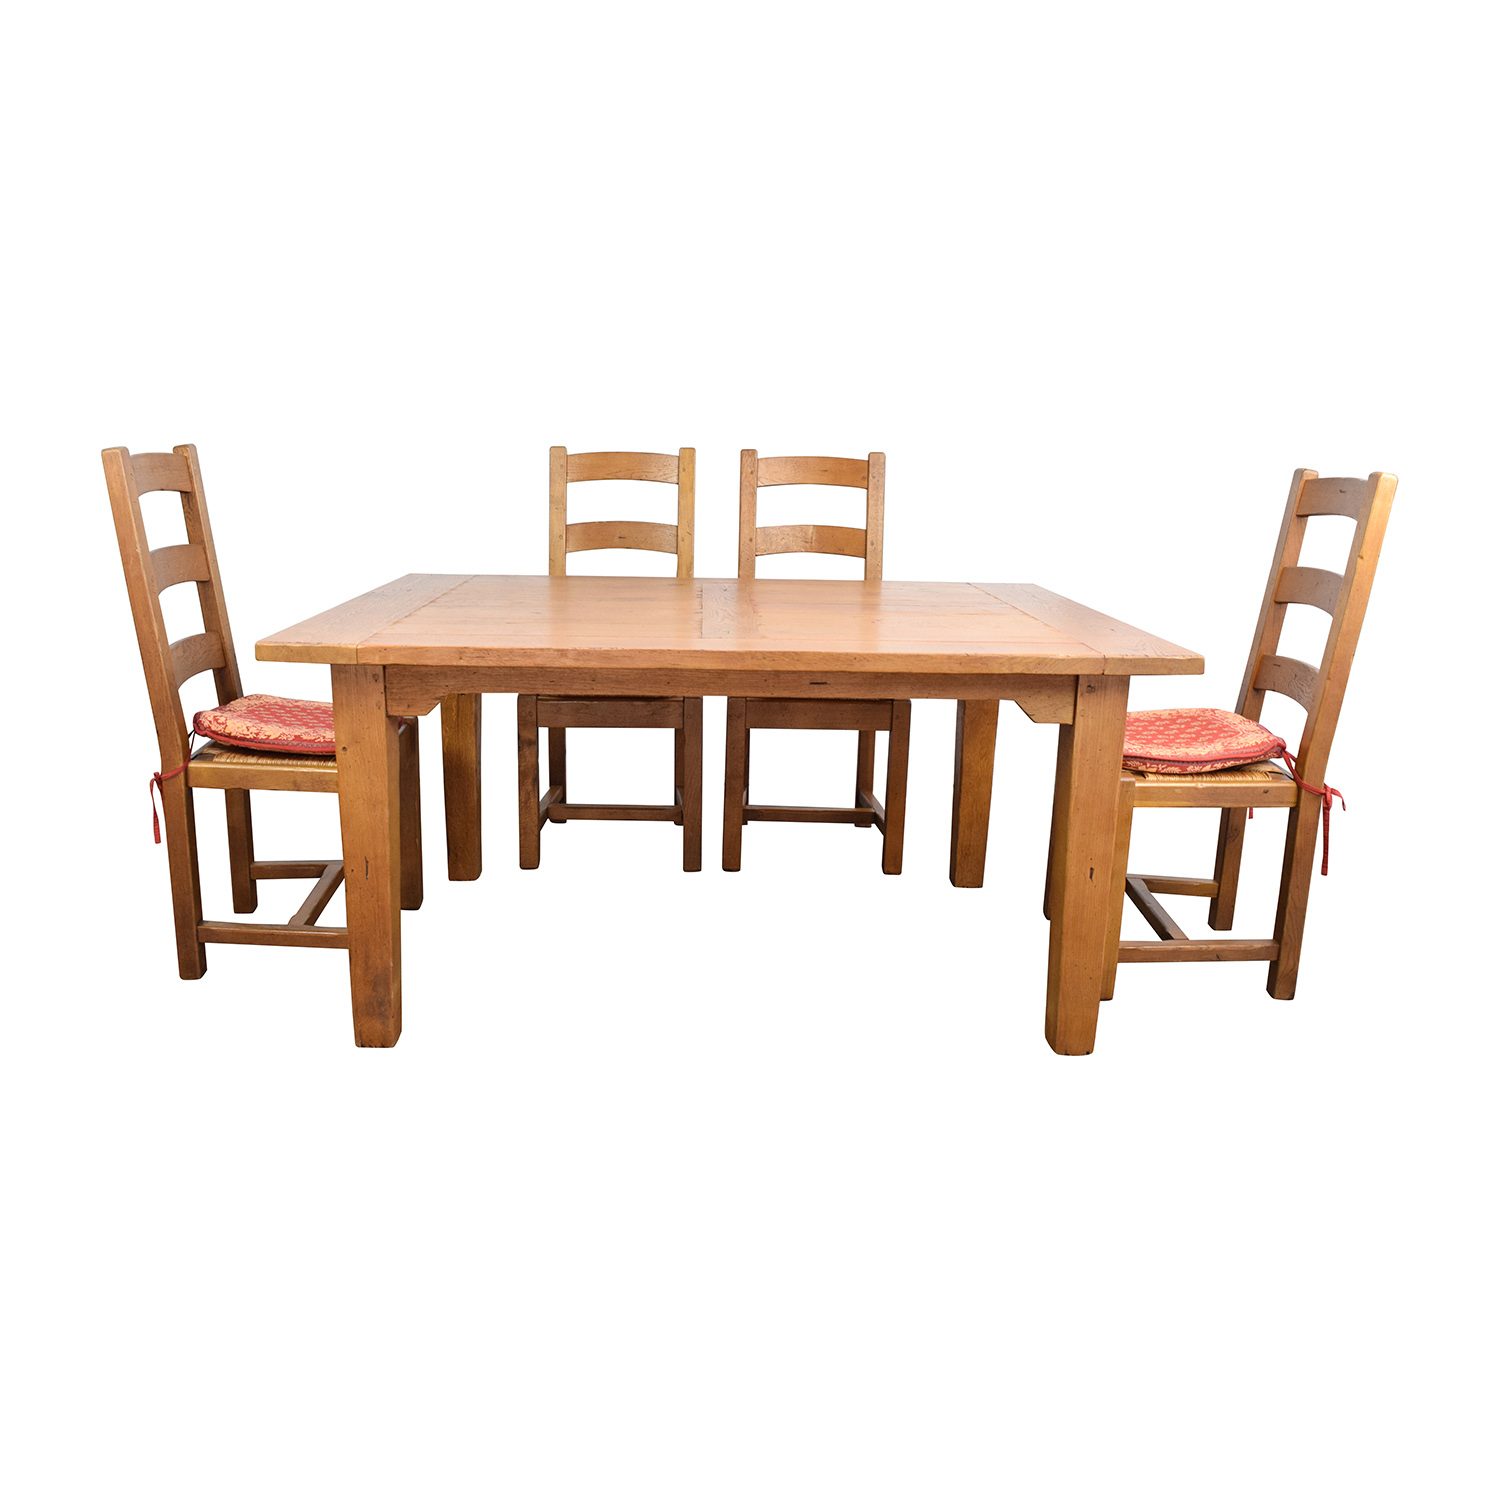 buy Crate and Barrel Crate & Barrel French Farm Dining Set online